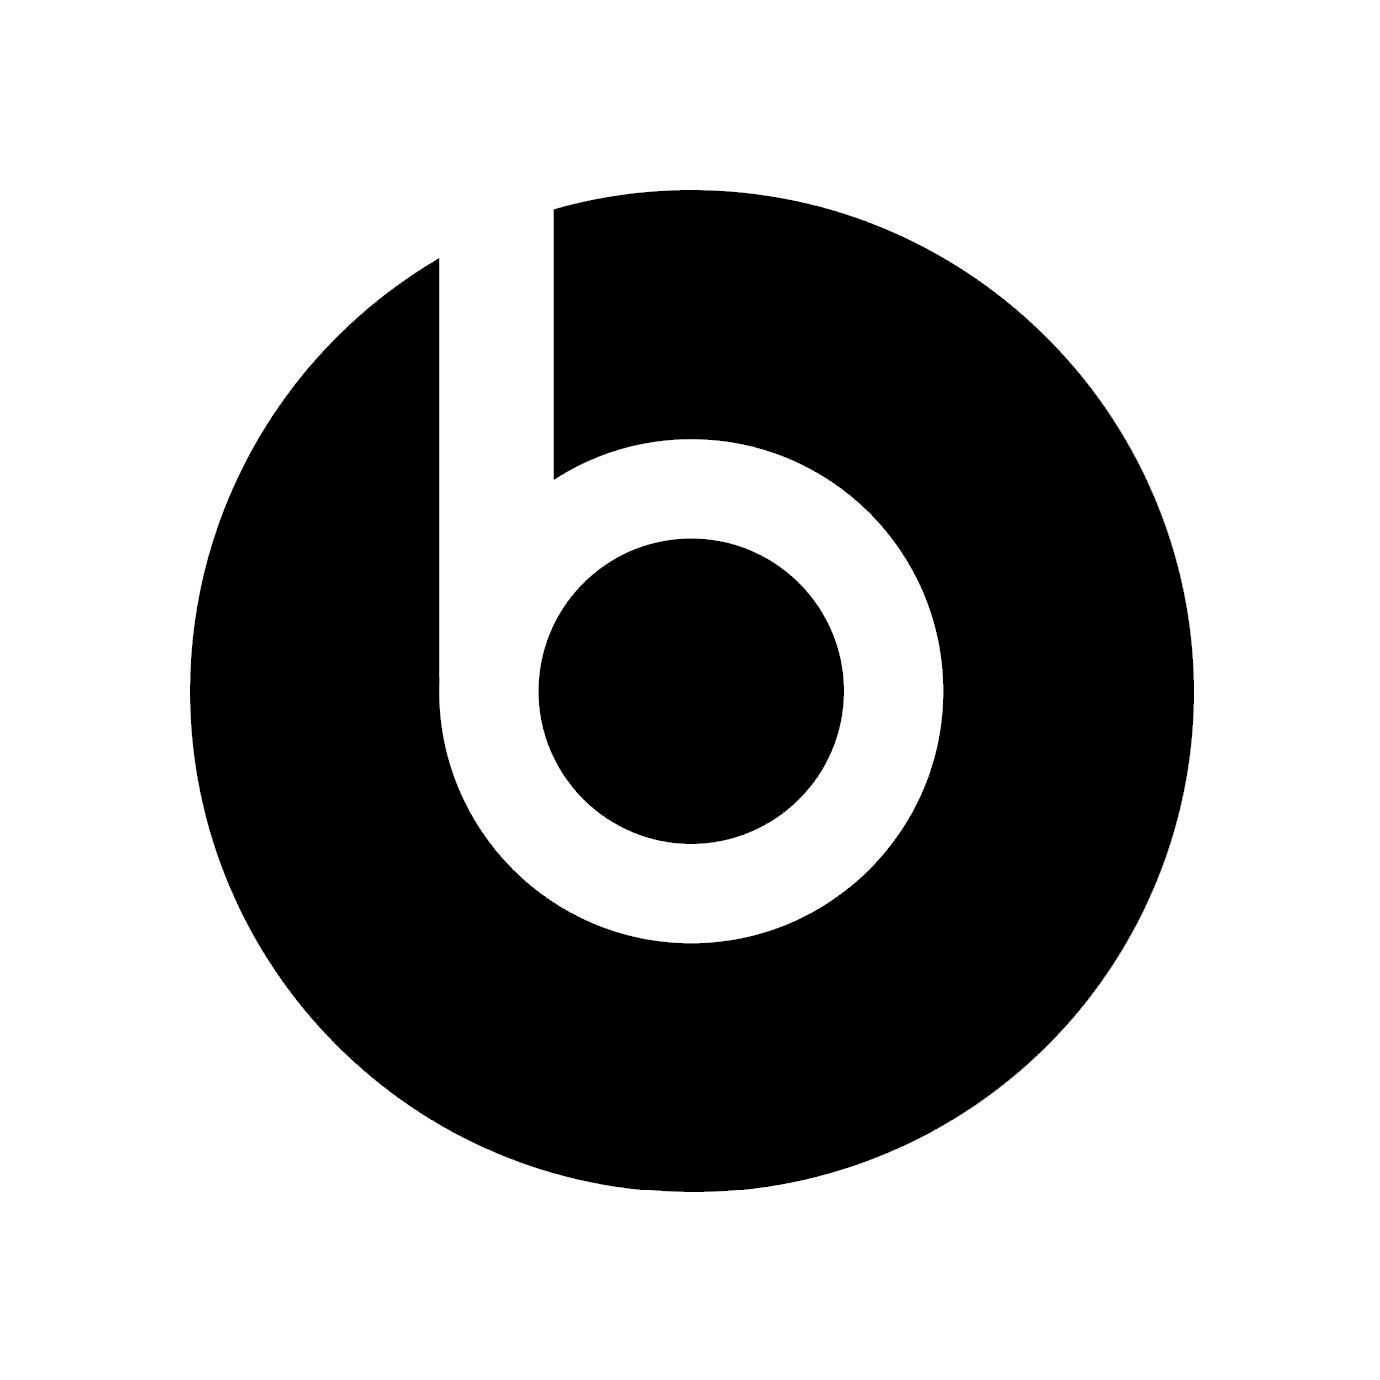 beats by dre logo black wwwimgkidcom the image kid